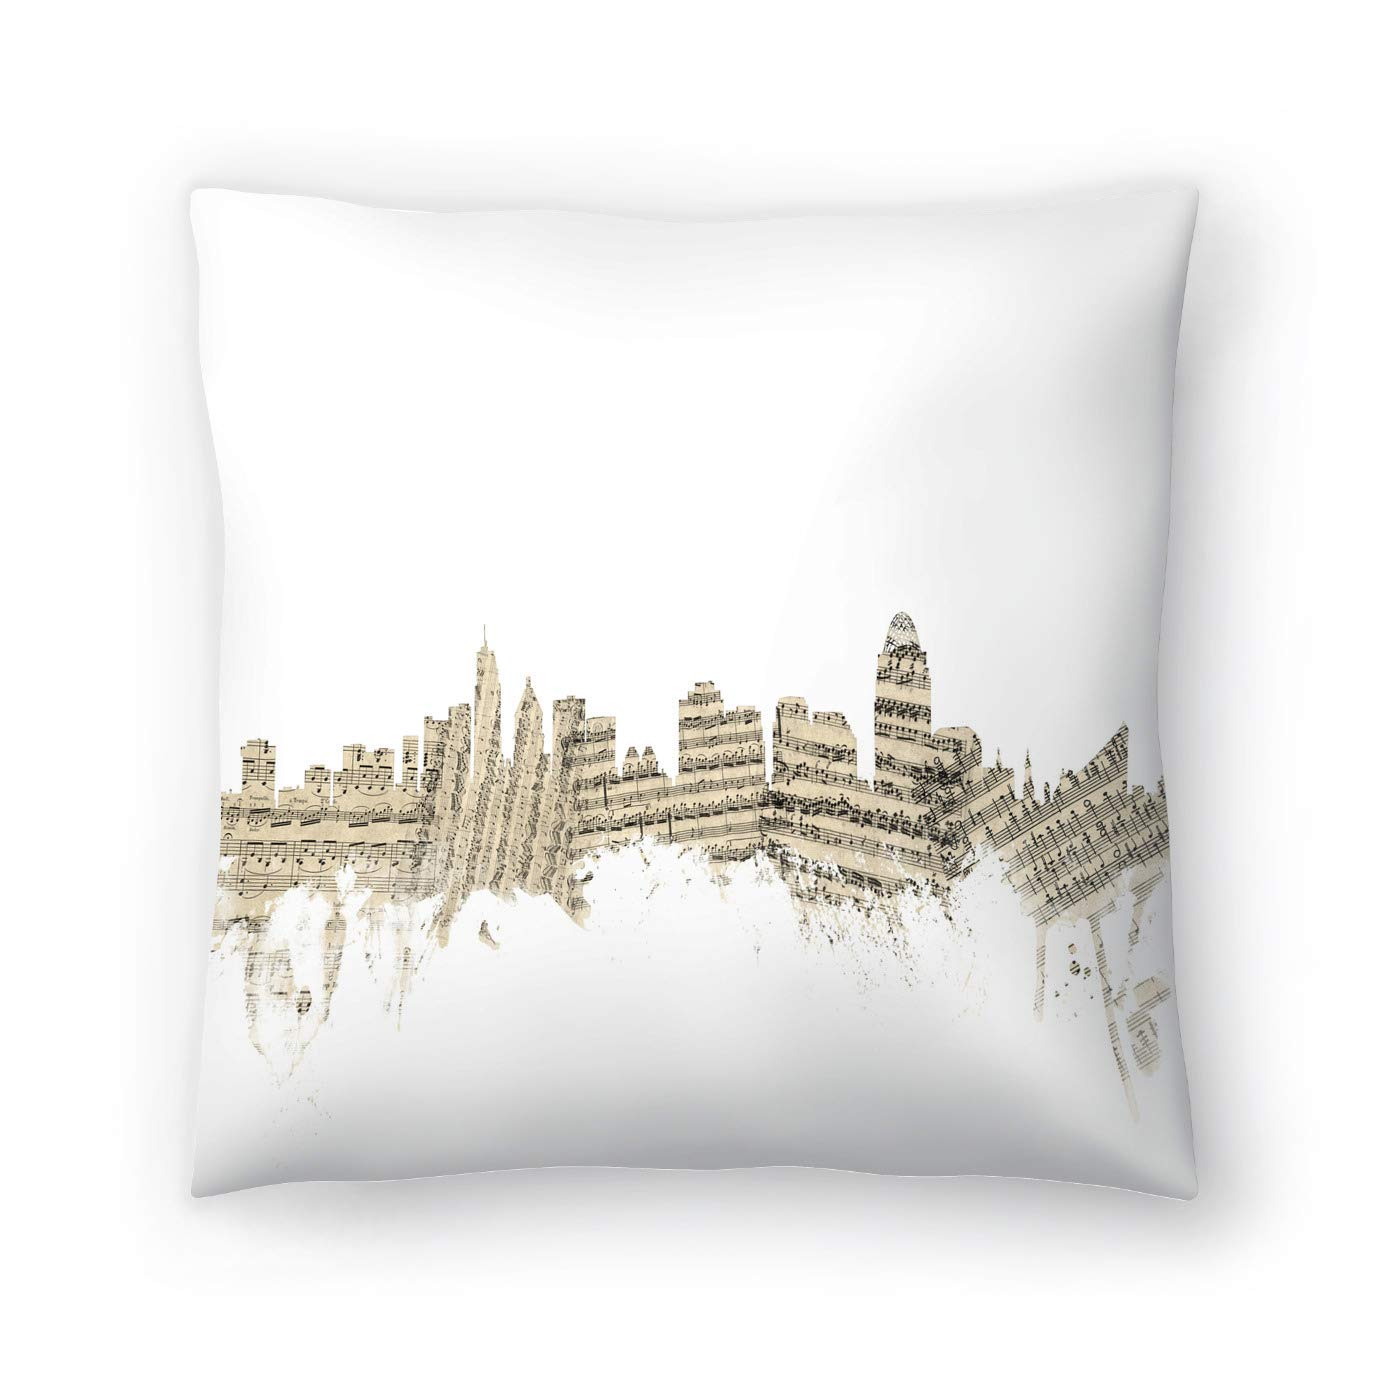 Buy American Flat Cincinnati Ohio Skyline Sheet Music Cityscape 2 Art Pause Pillow By Michael Tompsett 18 X 18 Online At Low Prices In India Amazon In